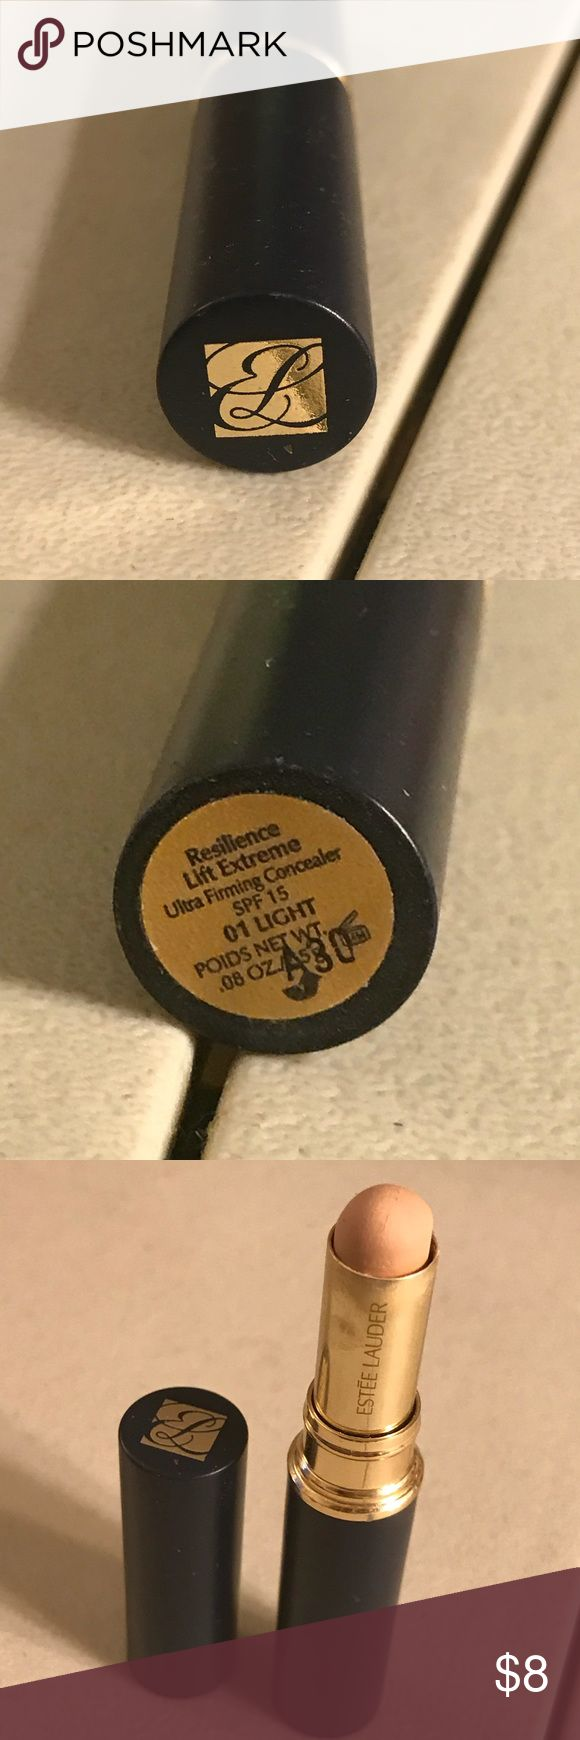 Estée Lauder resilience lift extreme concealer Estée Lauder resilience lift extreme ultra firming concealer spf 15 in color 01 light, used. Thanks for checking out Luxury1cosmetics!! Offers are welcomed, bundles are discounted!! Estee Lauder Makeup Concealer